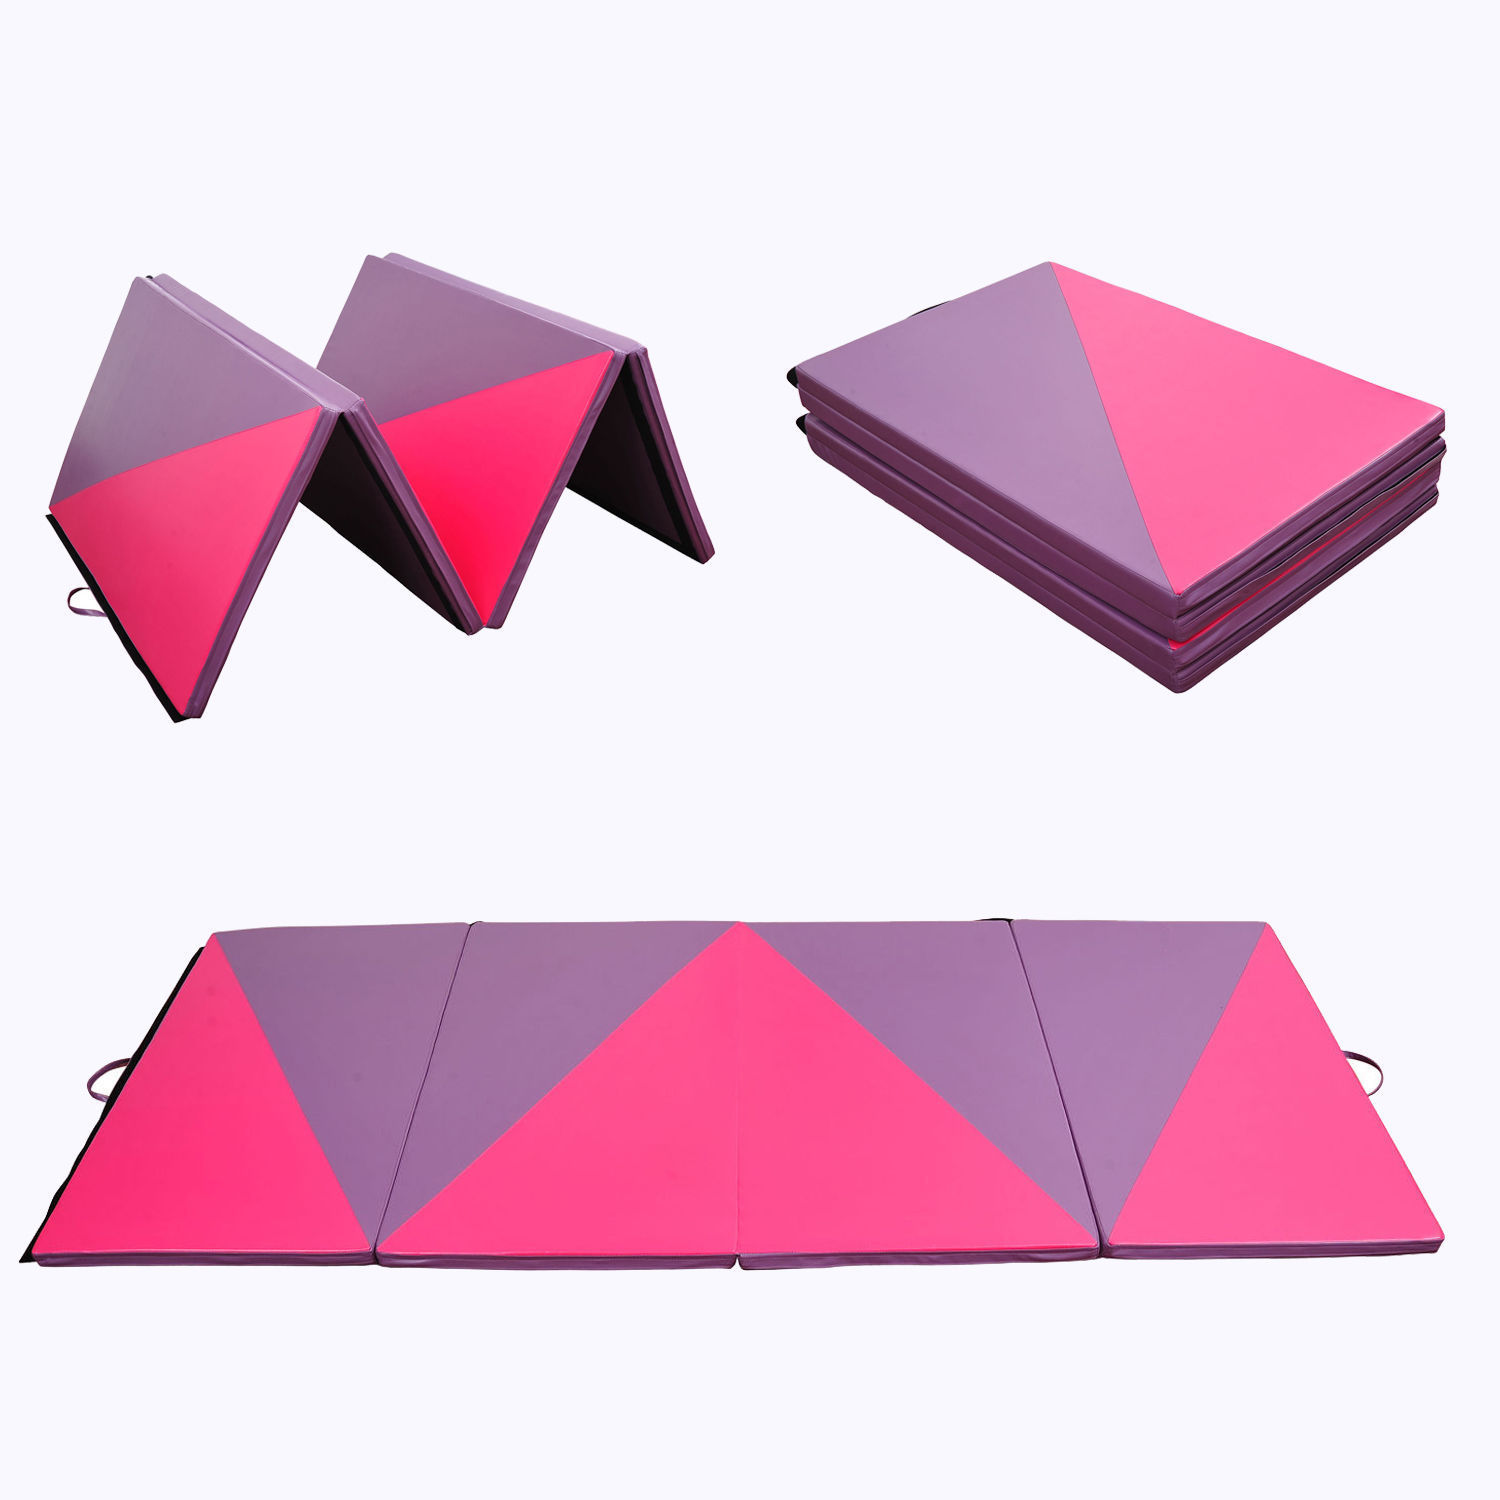 Soozier Yoga Mat Fodable Exercise Pad 4 Panel (Pink/purple Triangle Pattern)